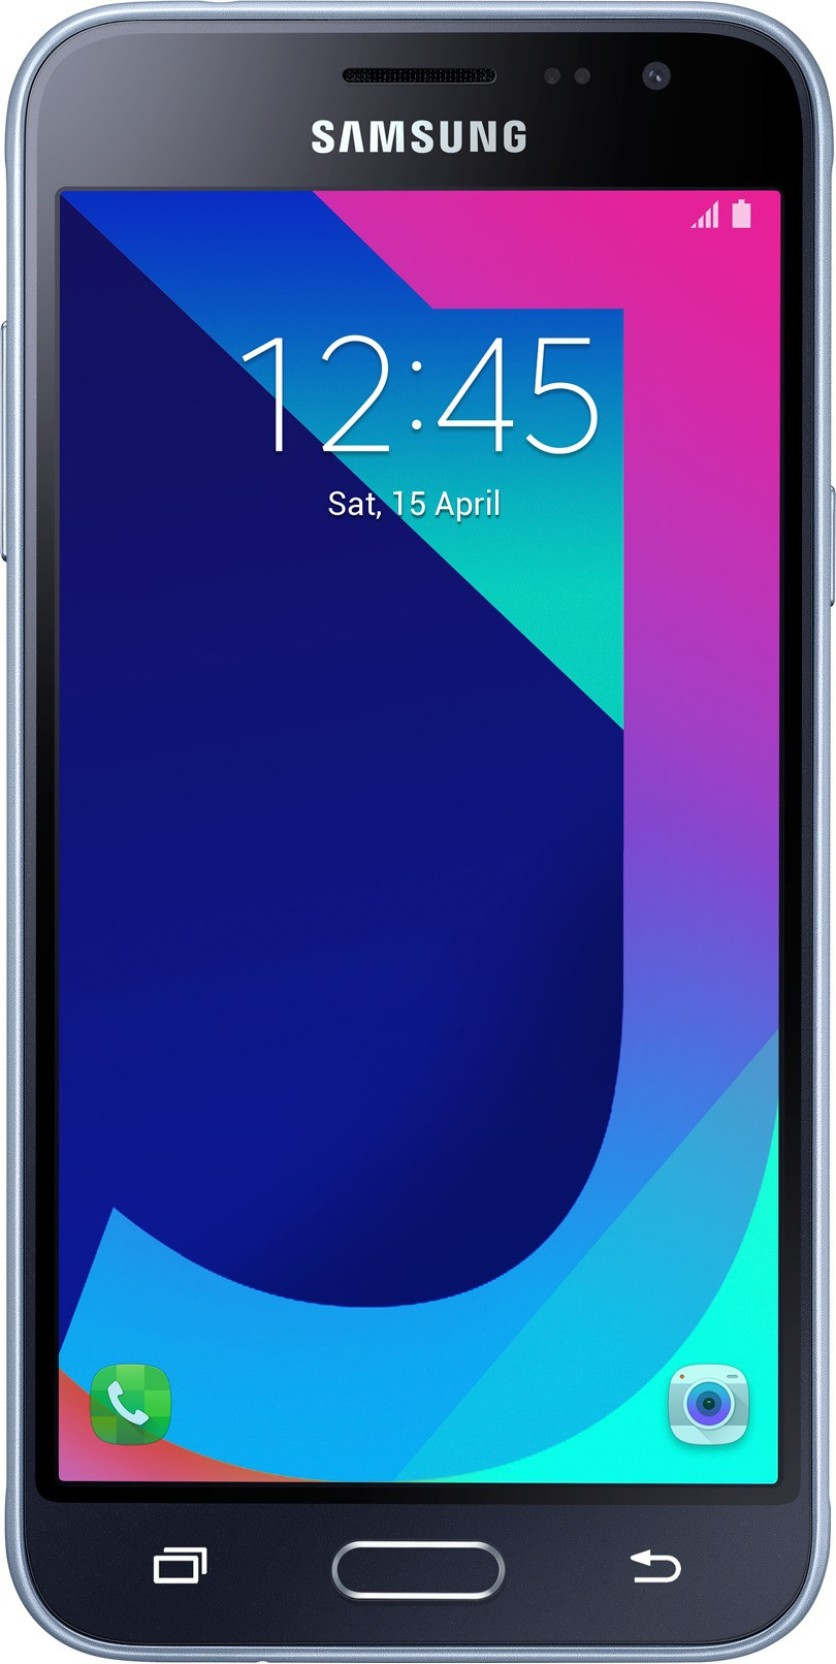 Samsung Galaxy J3 Pro Black 16 Gb Online At Best Price Only On Tempered Glass Full Color Cover Offer